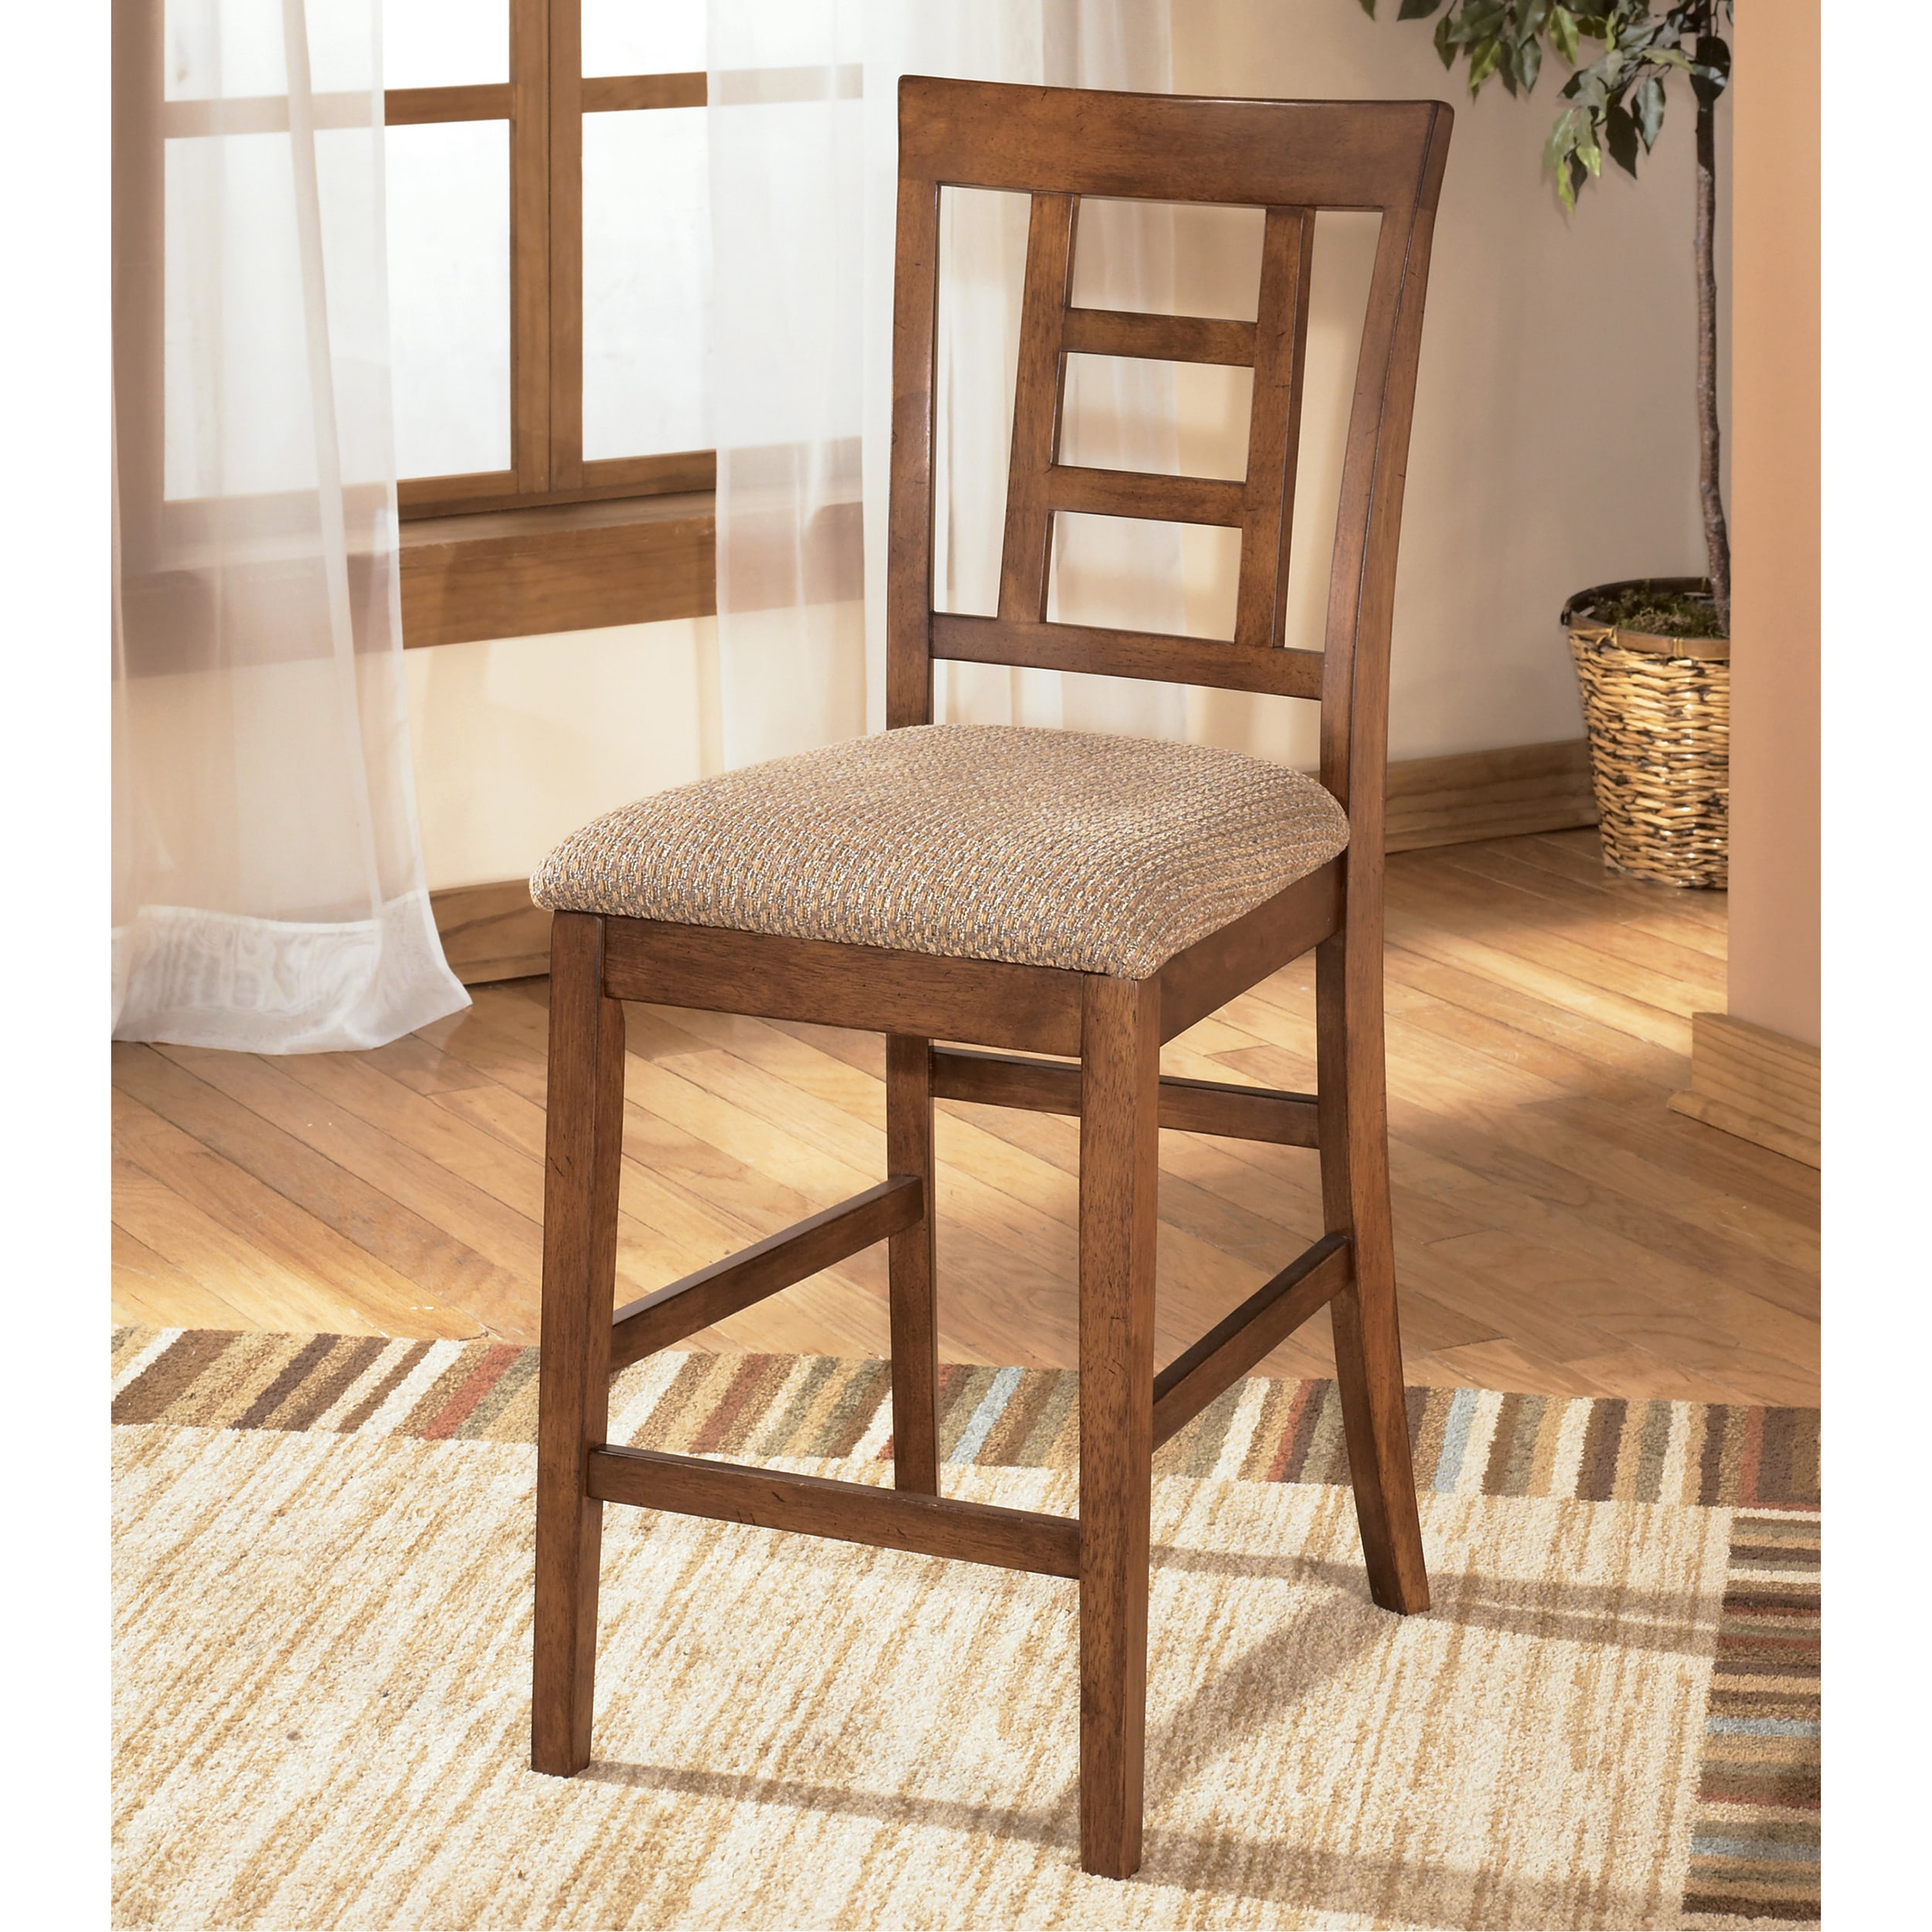 Signature Design by Ashley 'Cross Island' Upholstered Bar Stool (Set of 2) at Sears.com